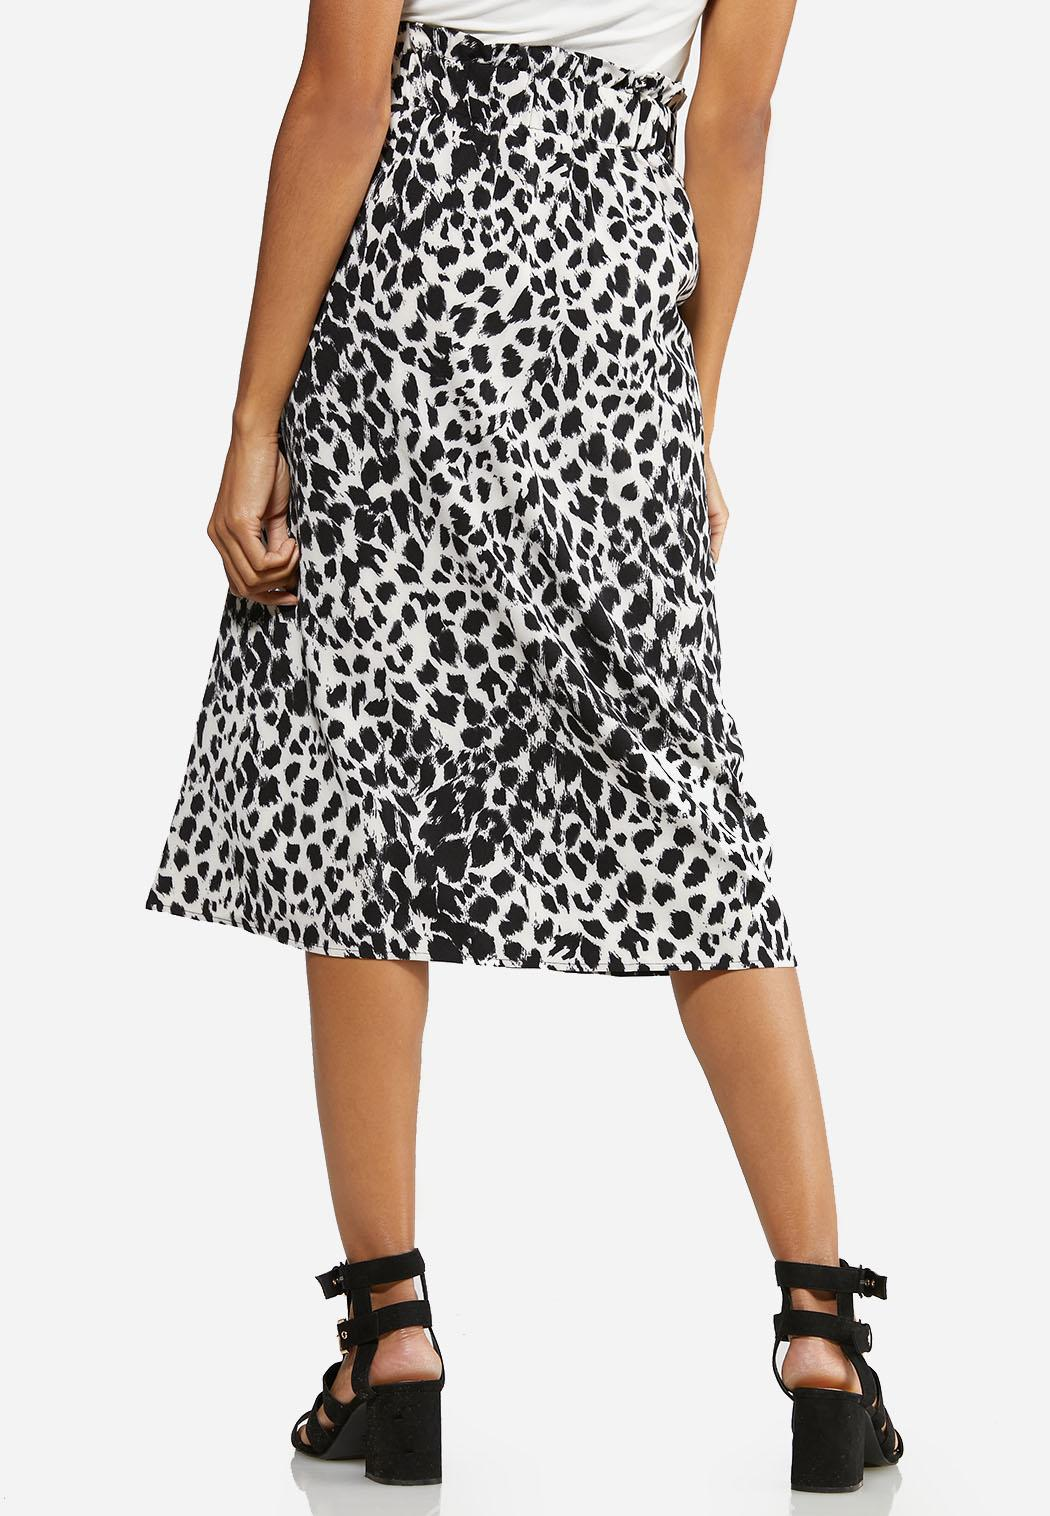 Black White Leopard Midi Skirt (Item #43940717)